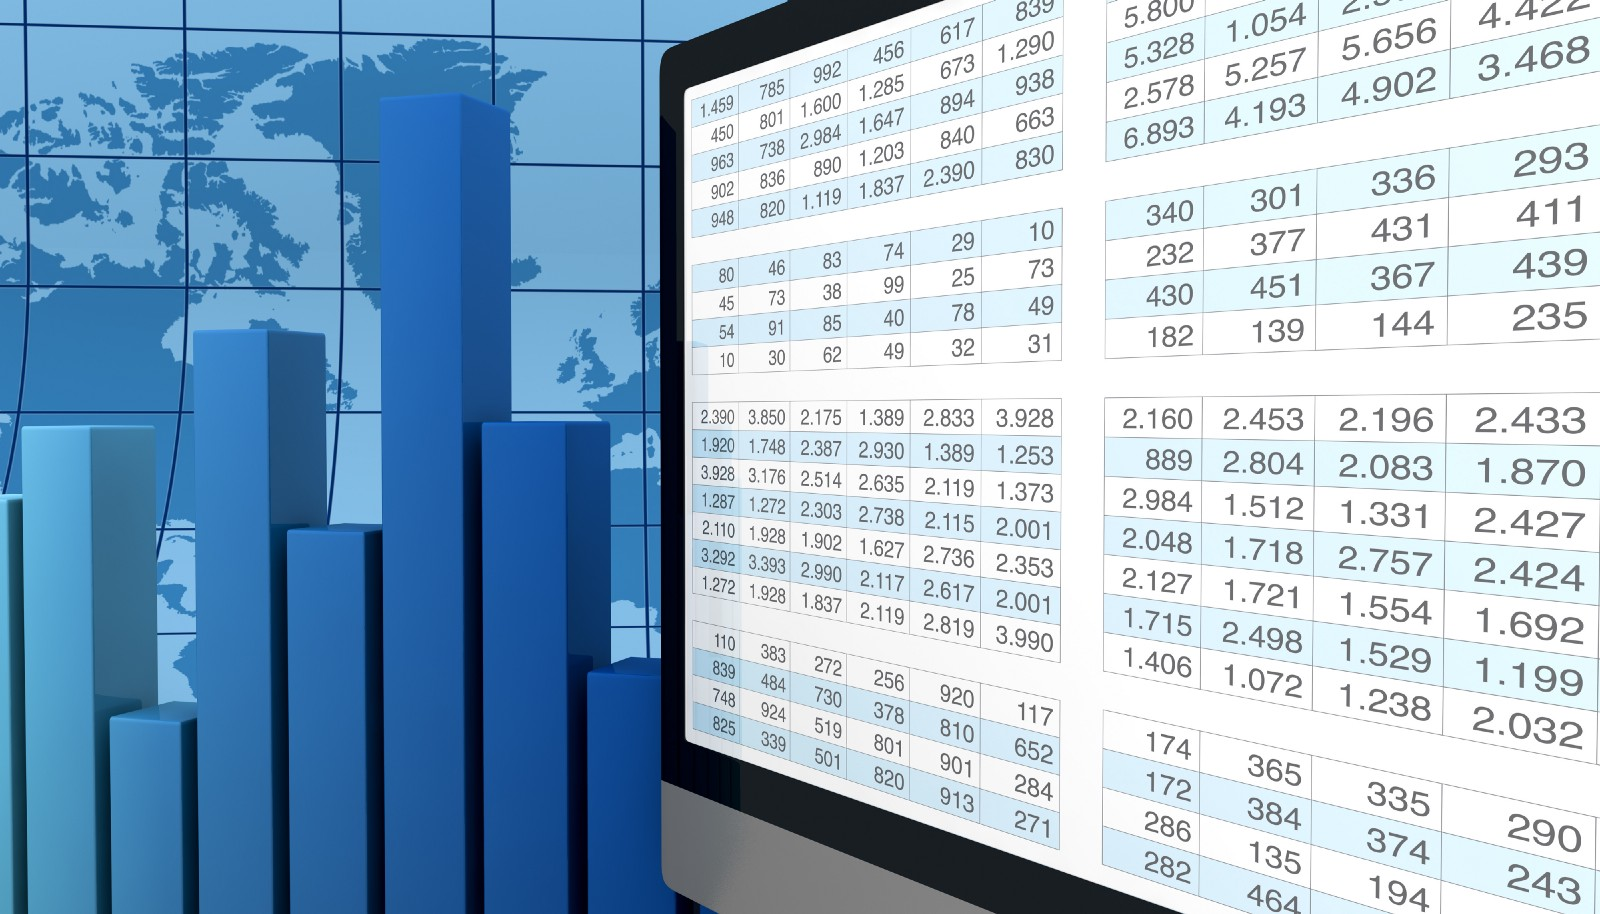 Combating Spreadsheet Risk in Private Equity Firms